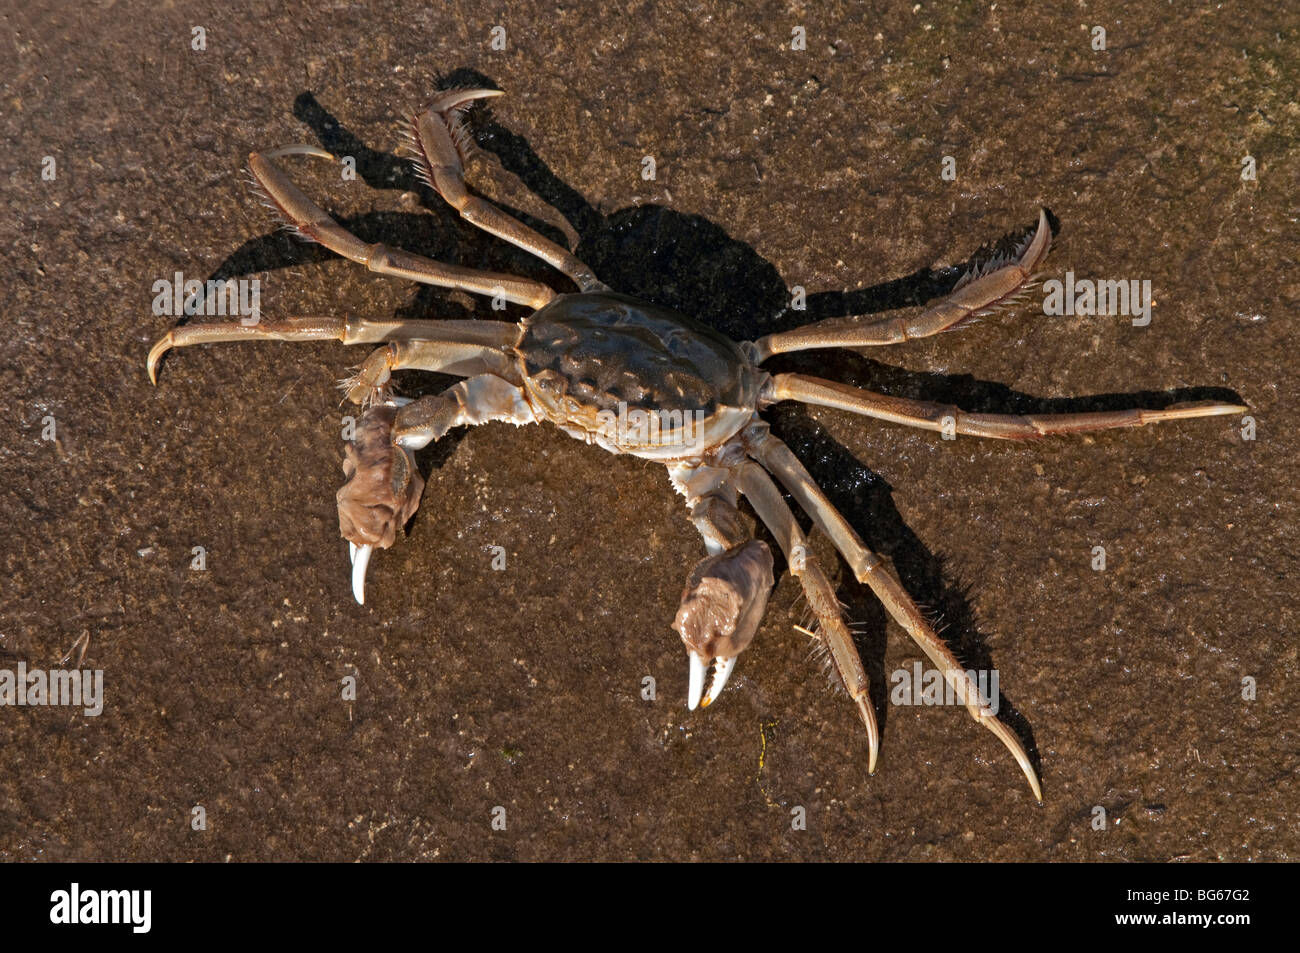 Chinese Mitten Crab (Eriocheir sinensis). Male seen from above. - Stock Image